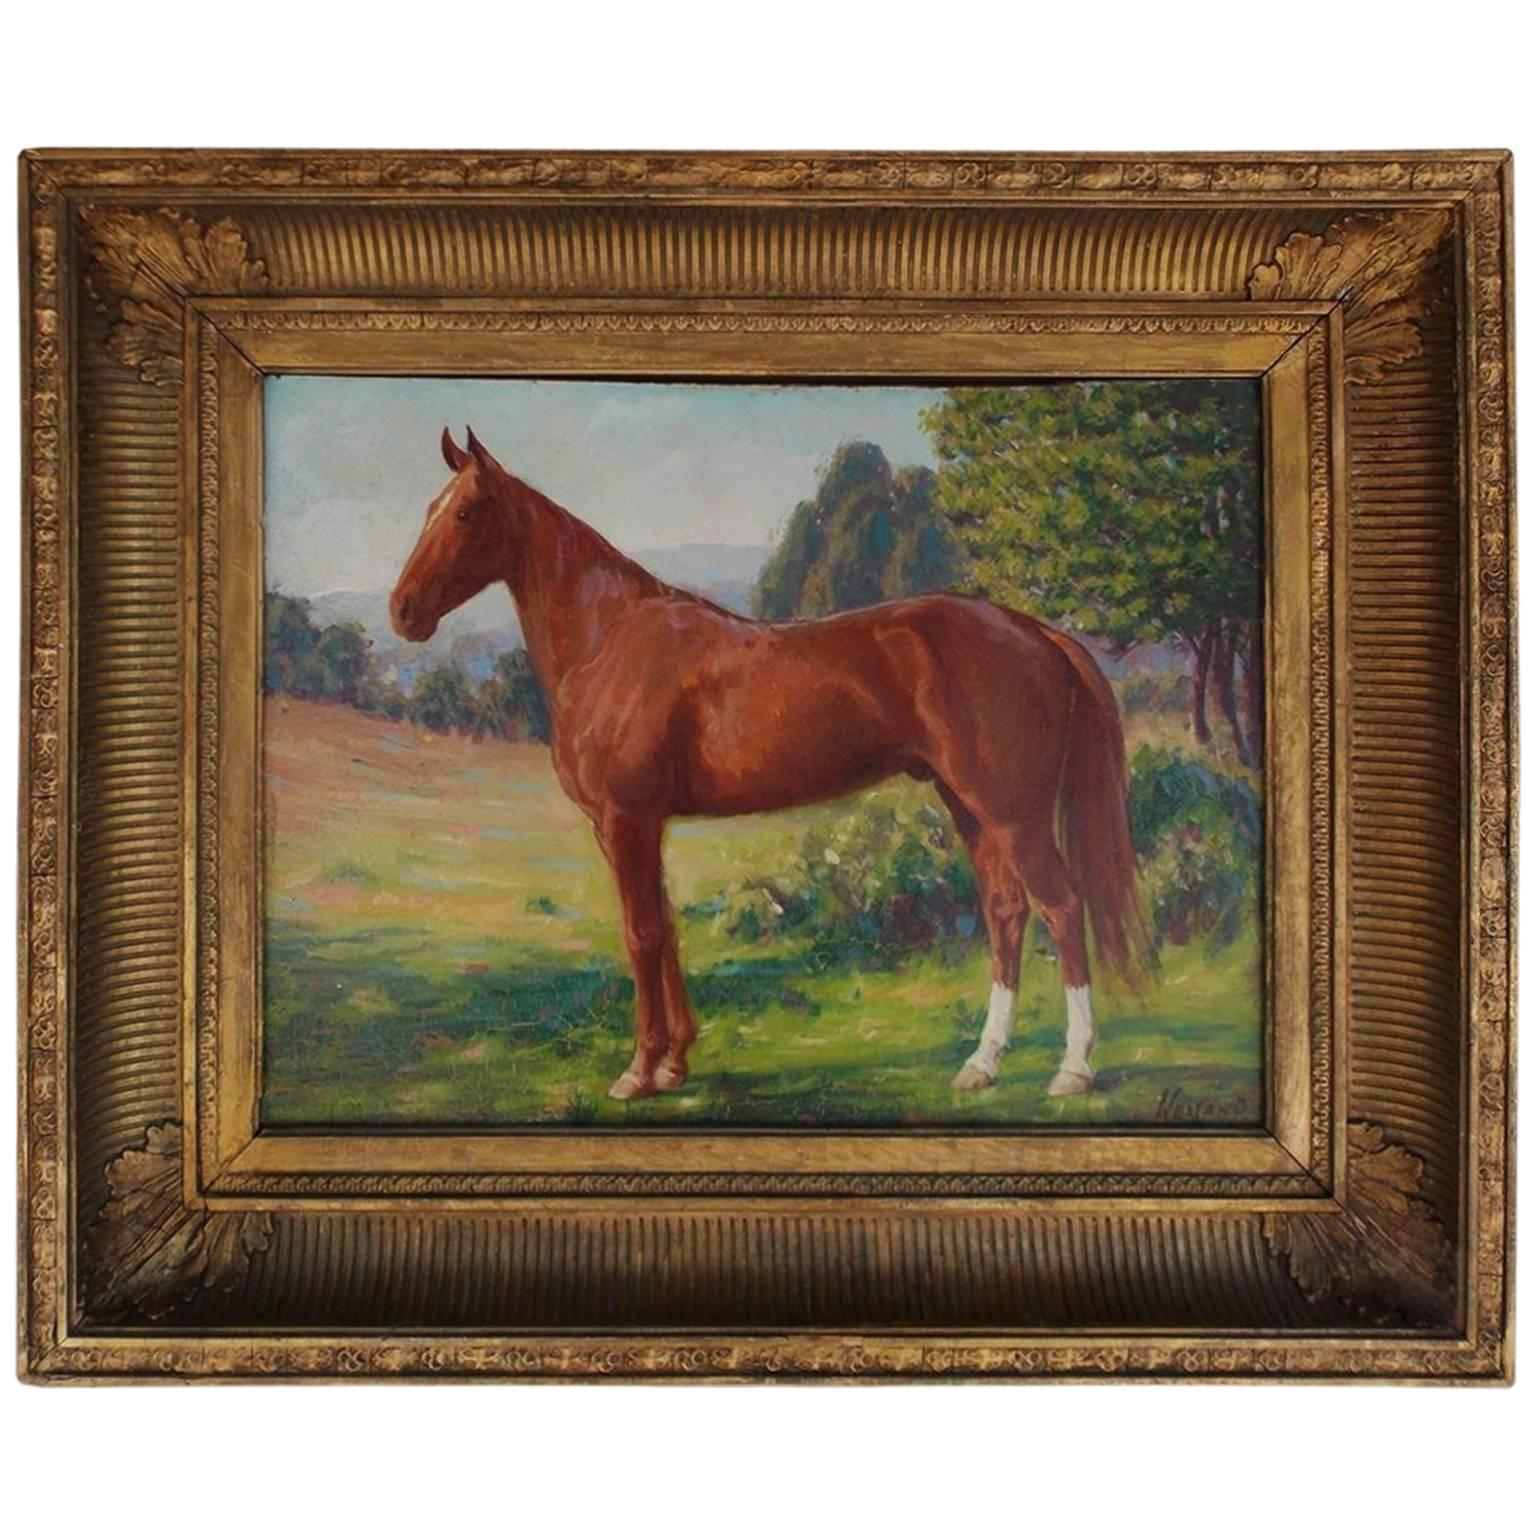 American Oil on Board Portrait of Horse, NY, James Weiland, Circa 1900